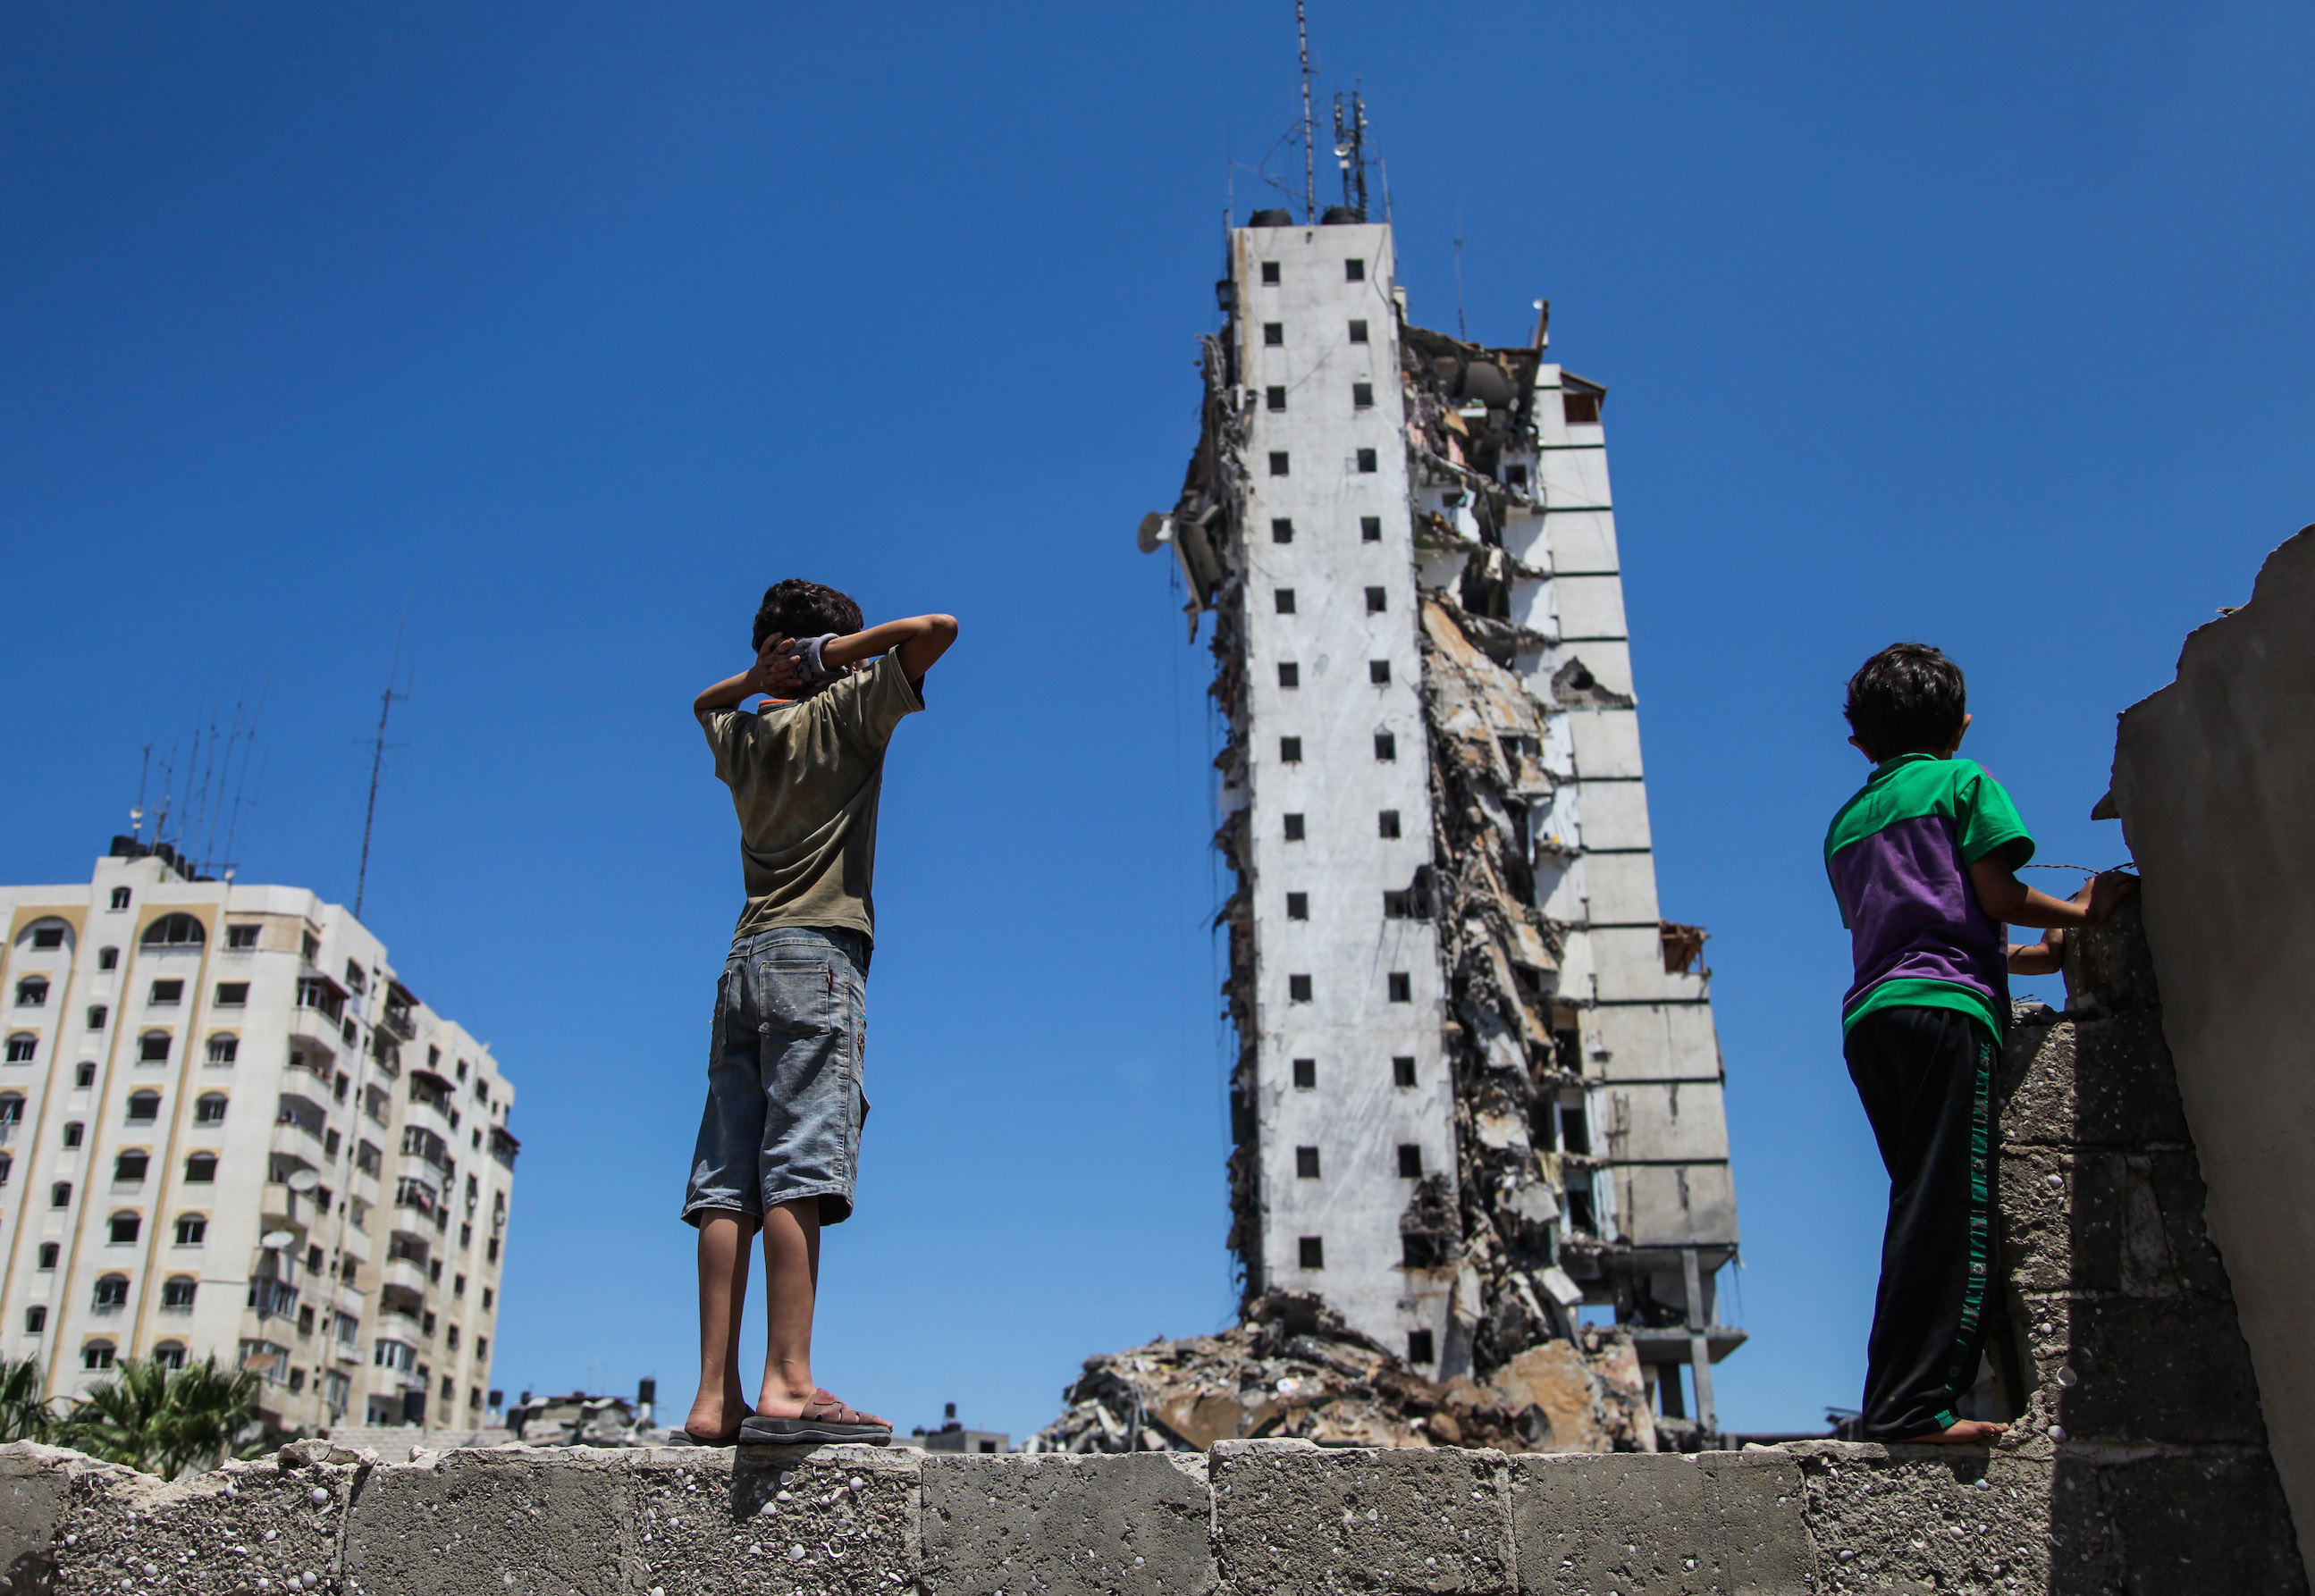 Palestinians viewing a building in Gaza City witnesses said was destroyed by an Israeli airstrike, Aug. 26, 2014. (Emad Nassar/Flash90)